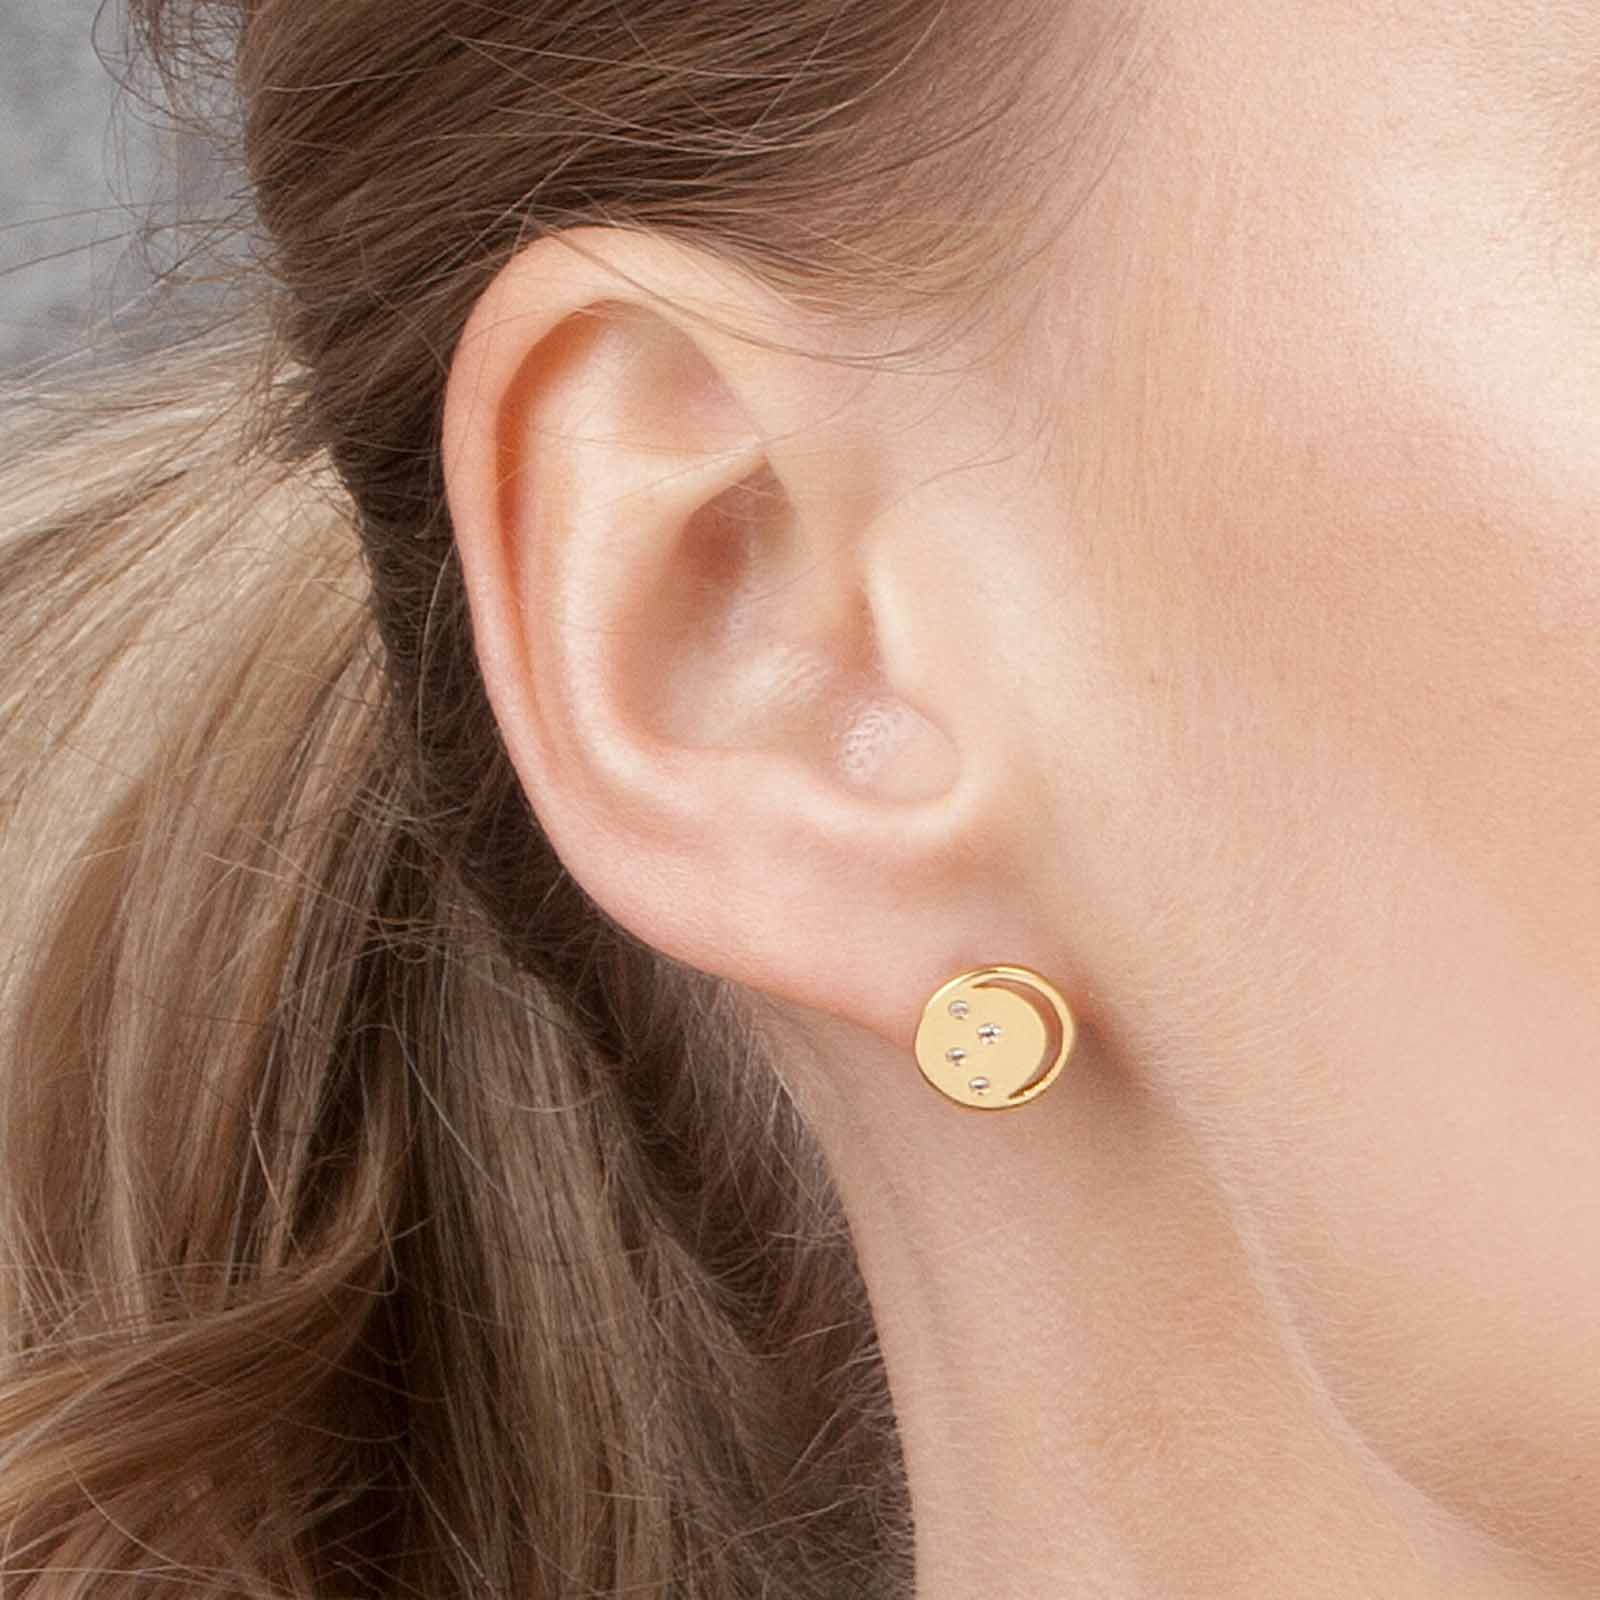 Gold vermeil eclipse studs, white topaz, geometric, unique British design